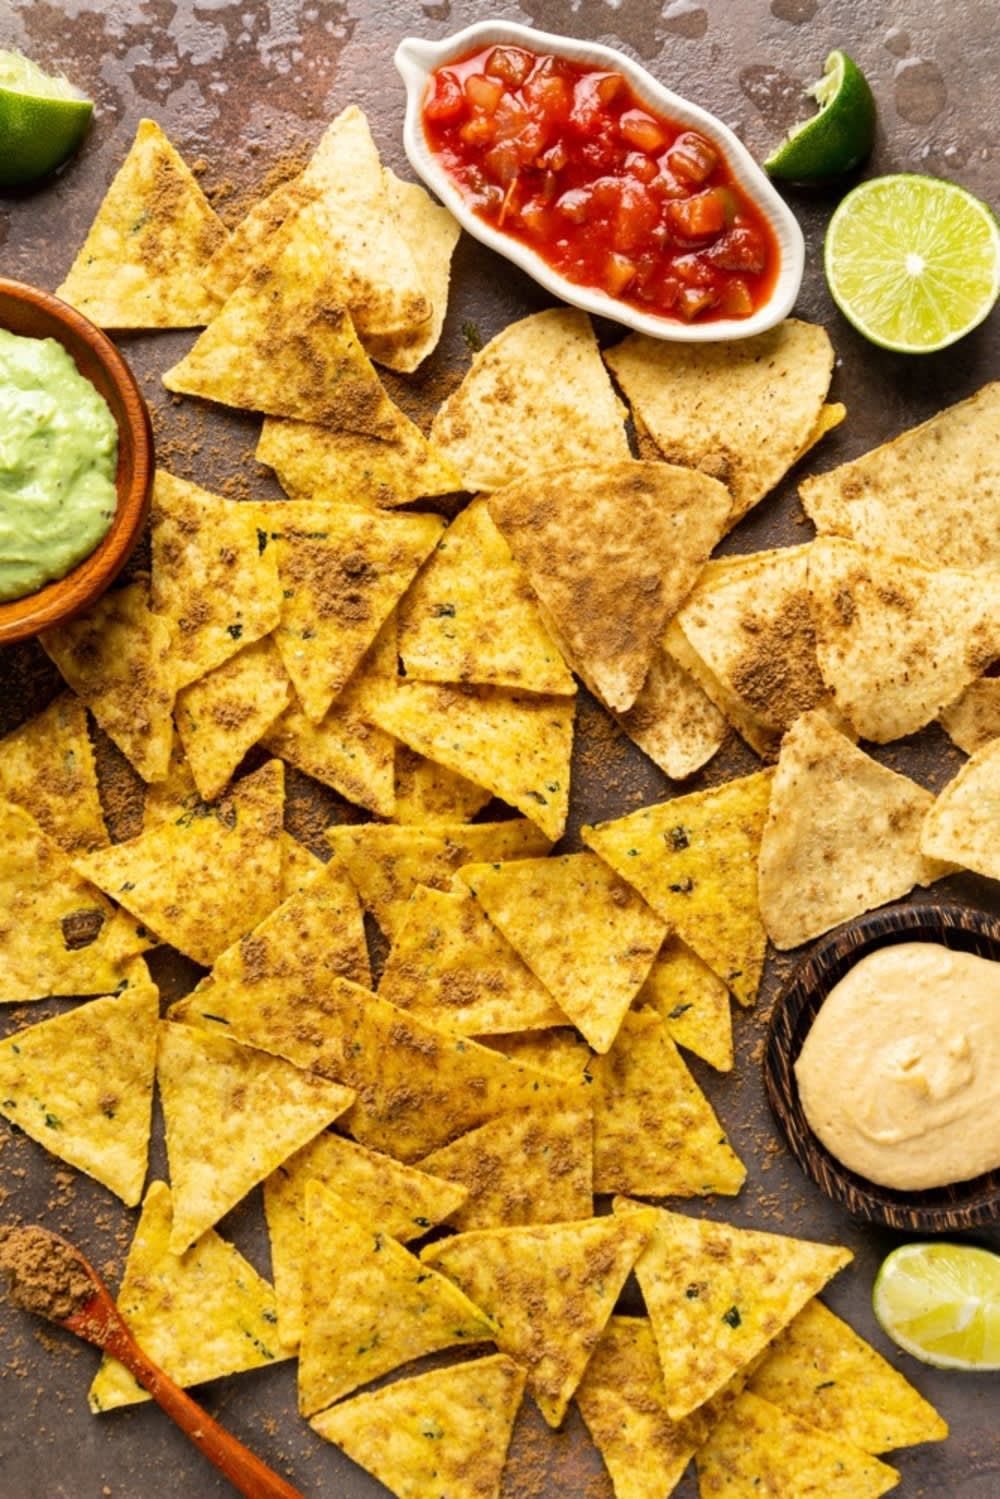 Plant- and insect-based tortilla chips